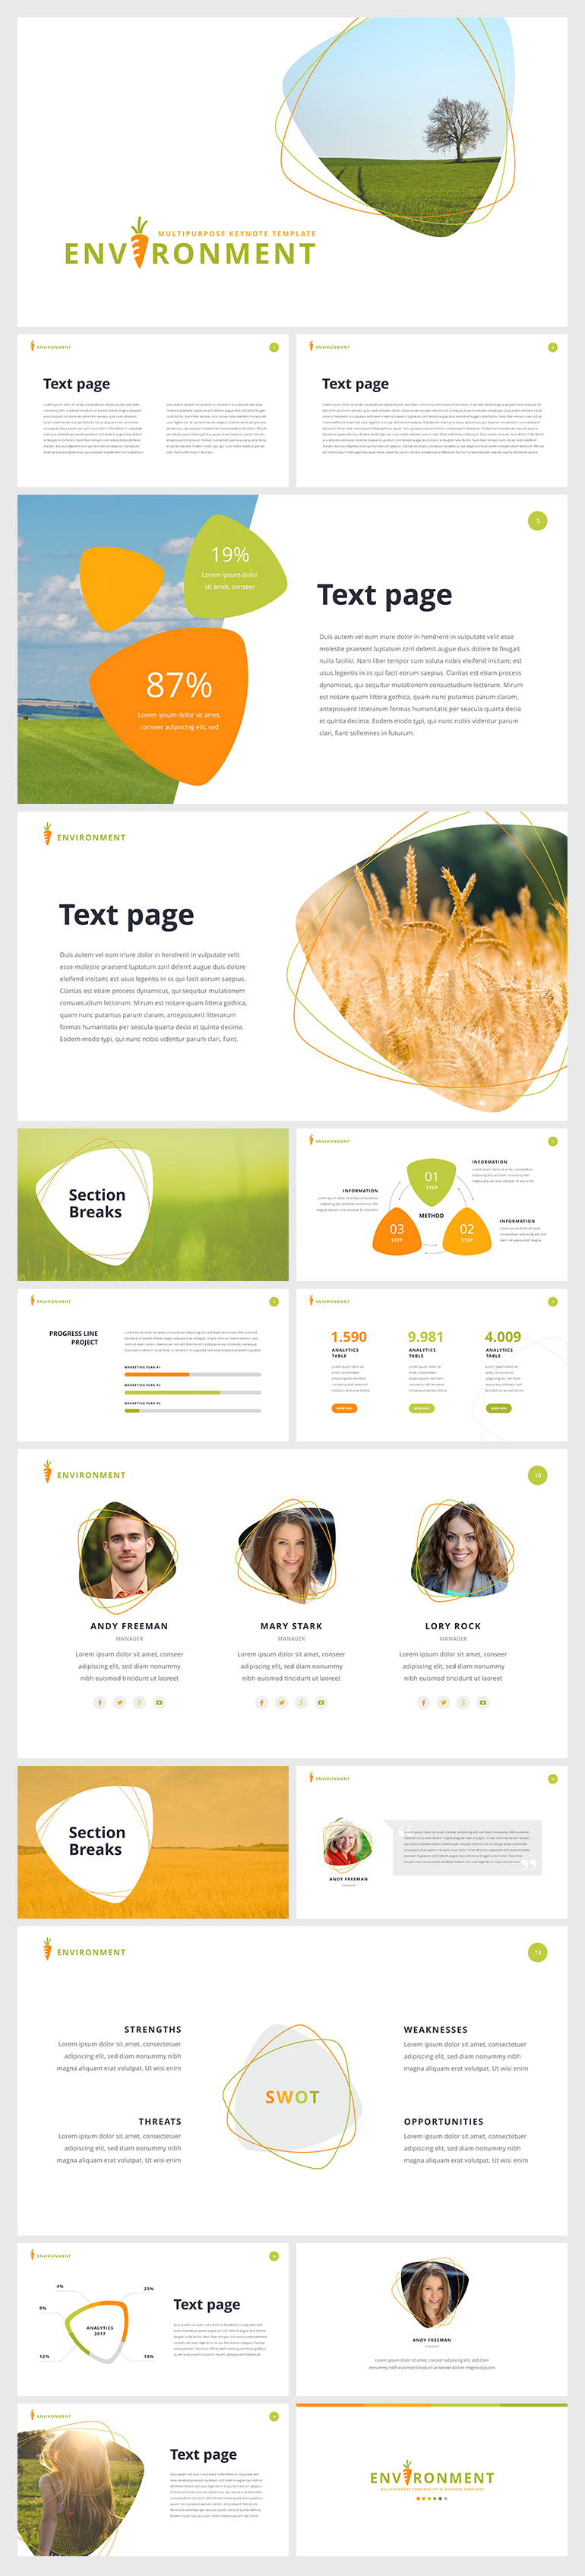 Environment ppt powerpoint template pinterest for Grafikdesign schule